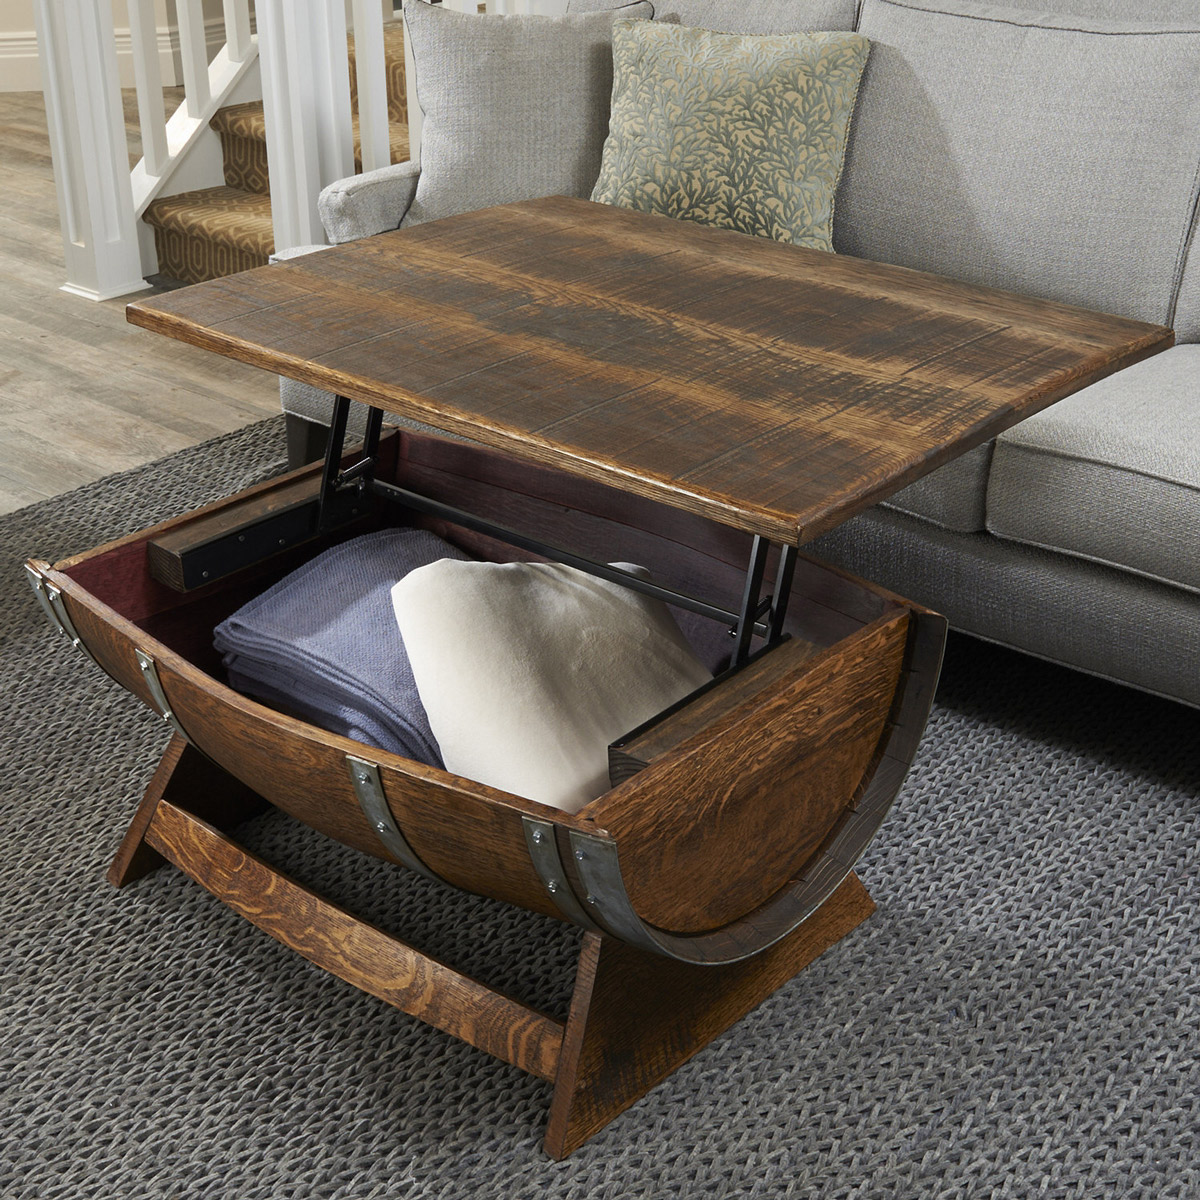 Prime Lift Top Reclaimed Wine Barrel Coffee Table Cjindustries Chair Design For Home Cjindustriesco